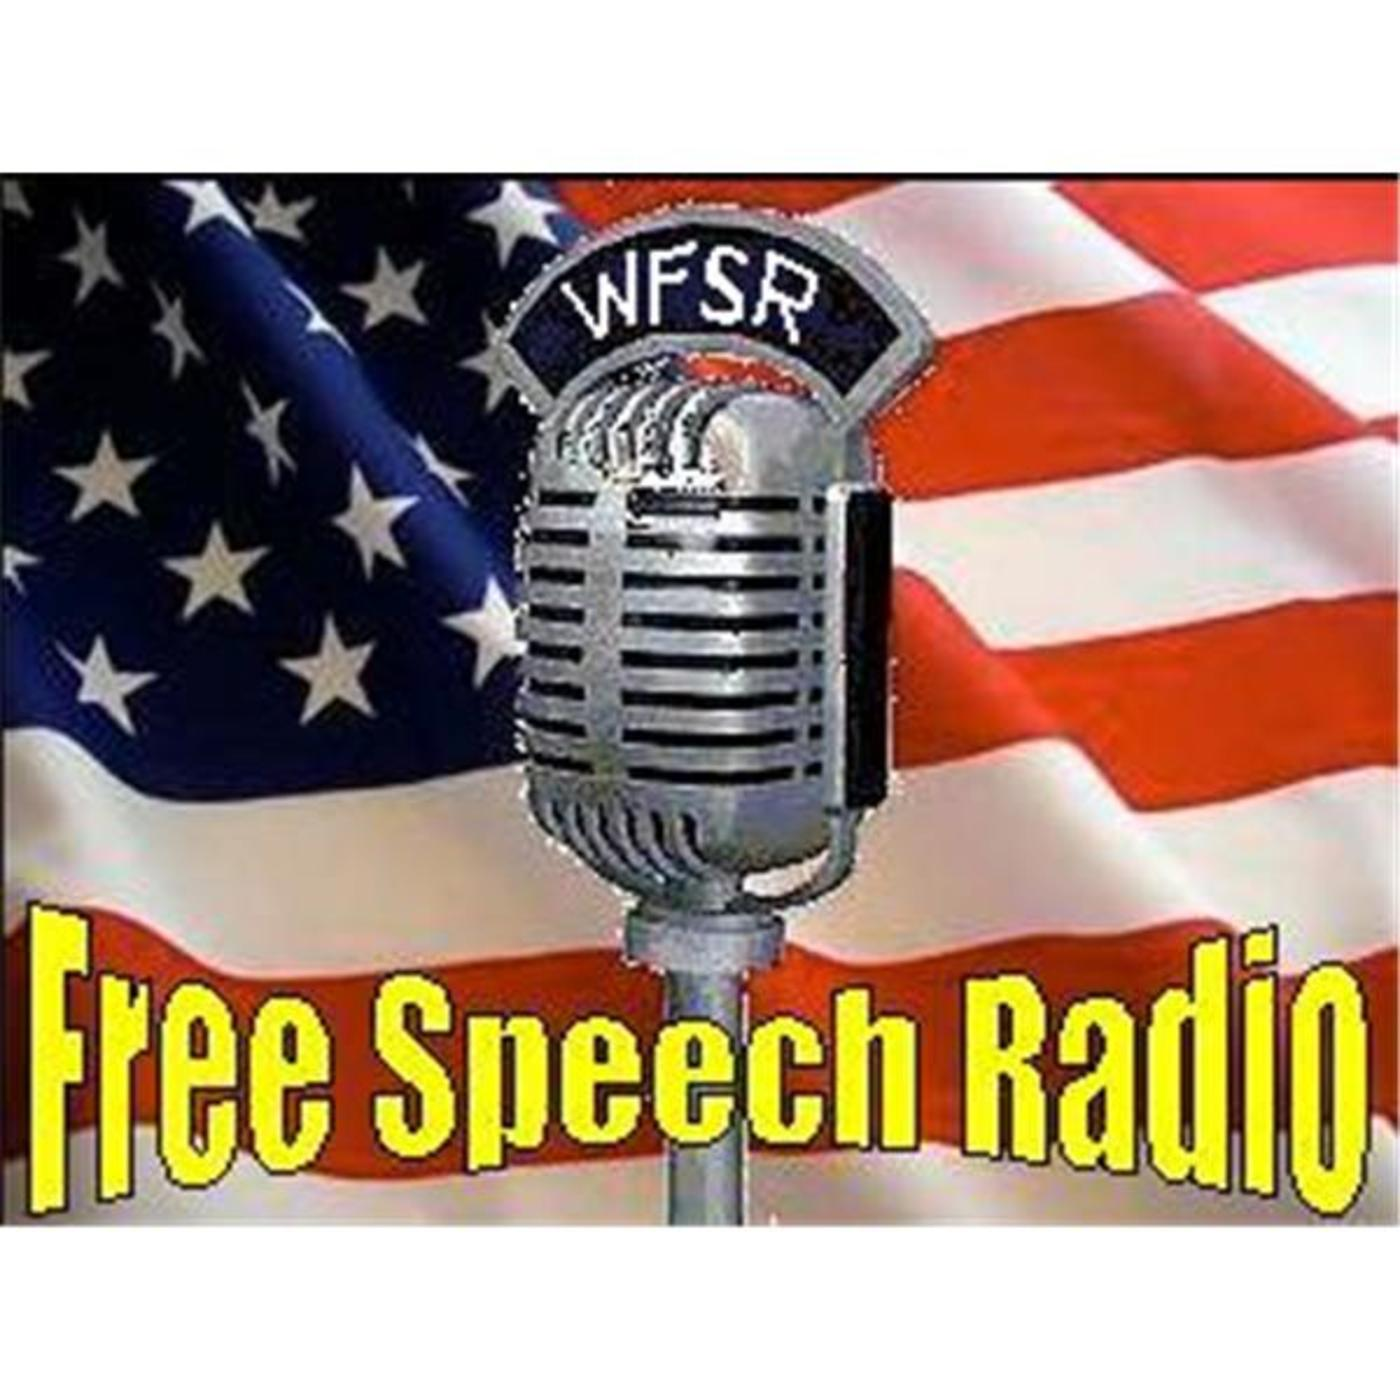 Free Speech Radio